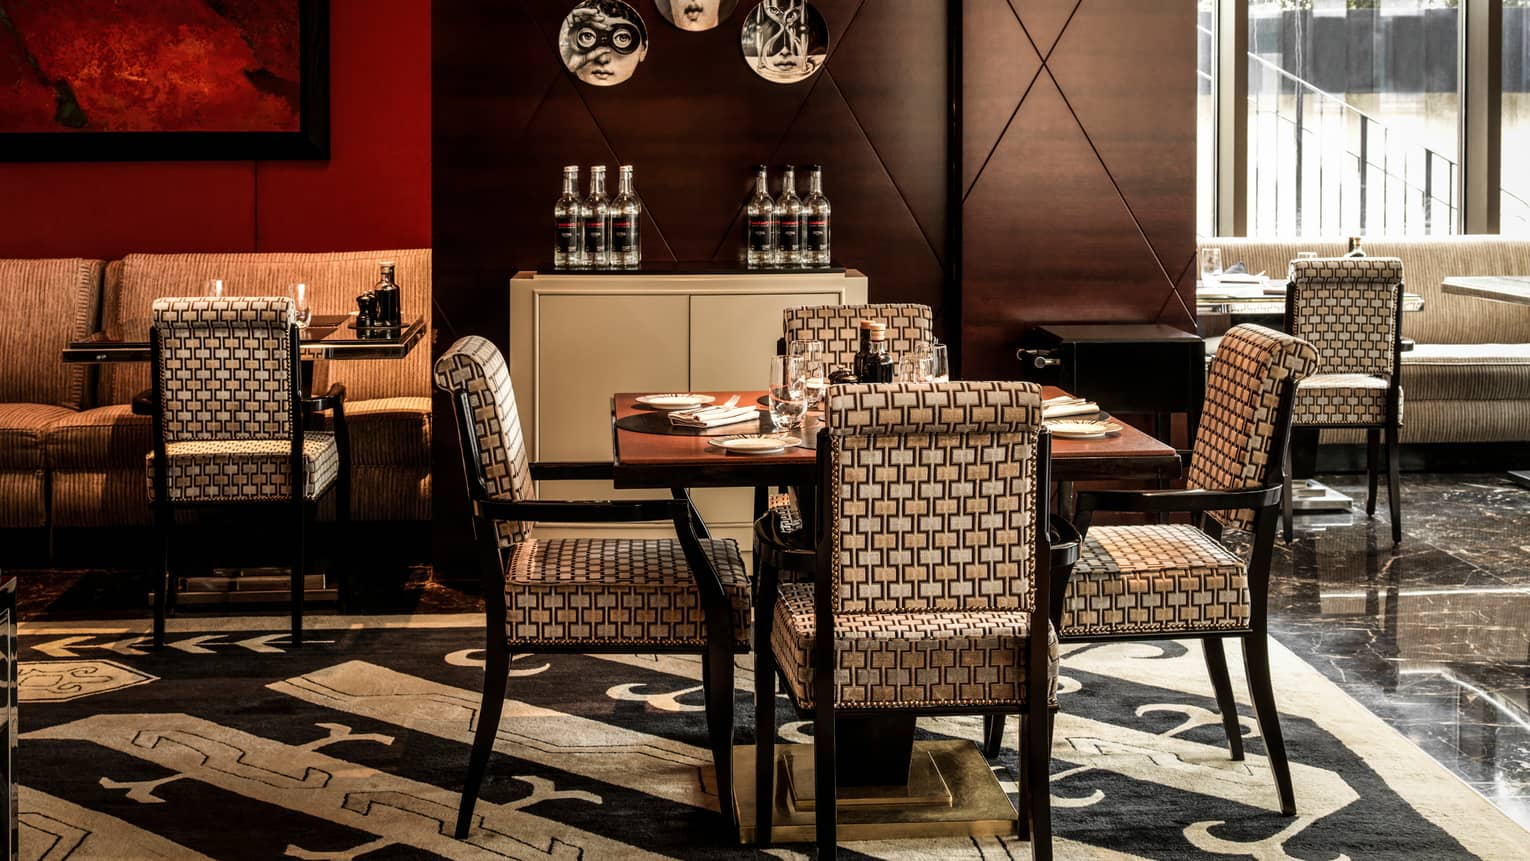 Amaranto restaurant dining table, upholstered chairs, red walls, black-and-white carpets